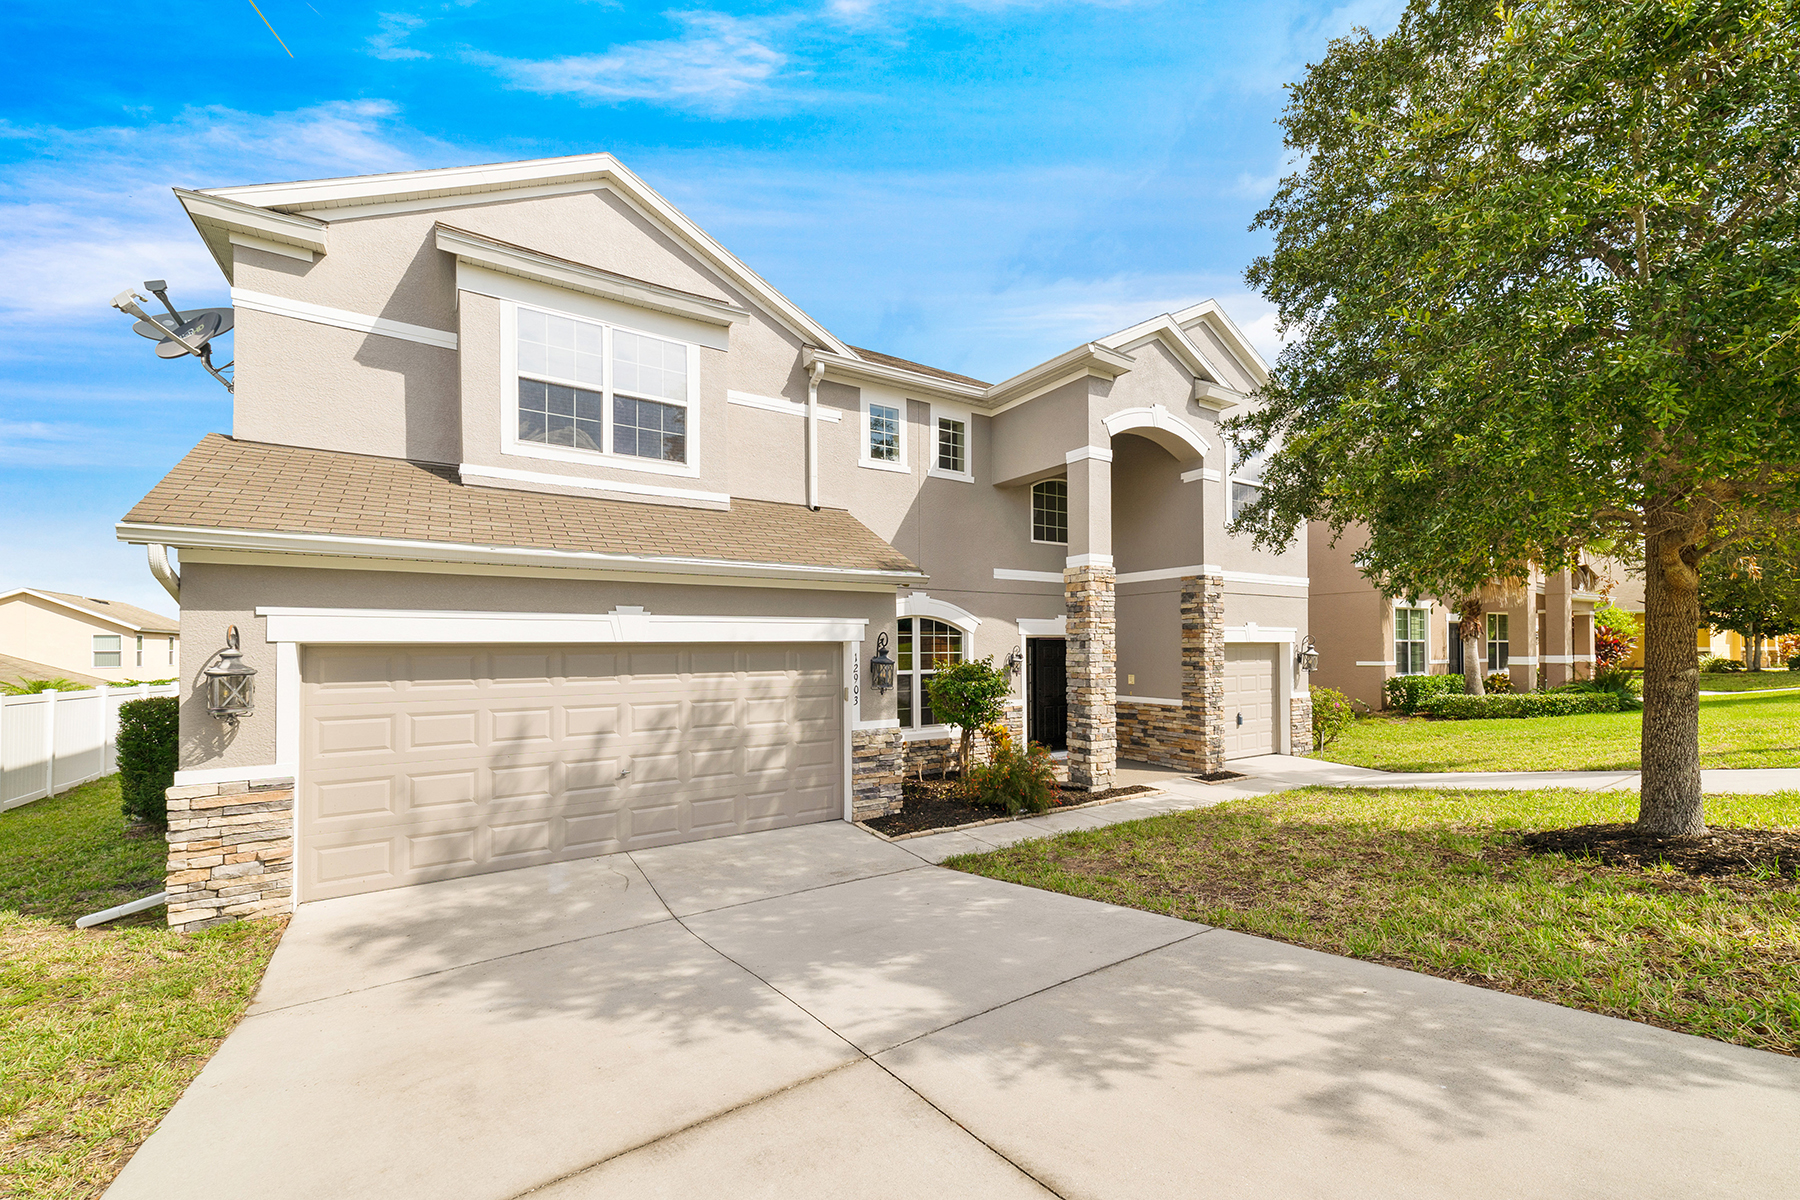 Single Family Homes for Active at CLERMONT 12903 Hyland Ln Clermont, Florida 34711 United States